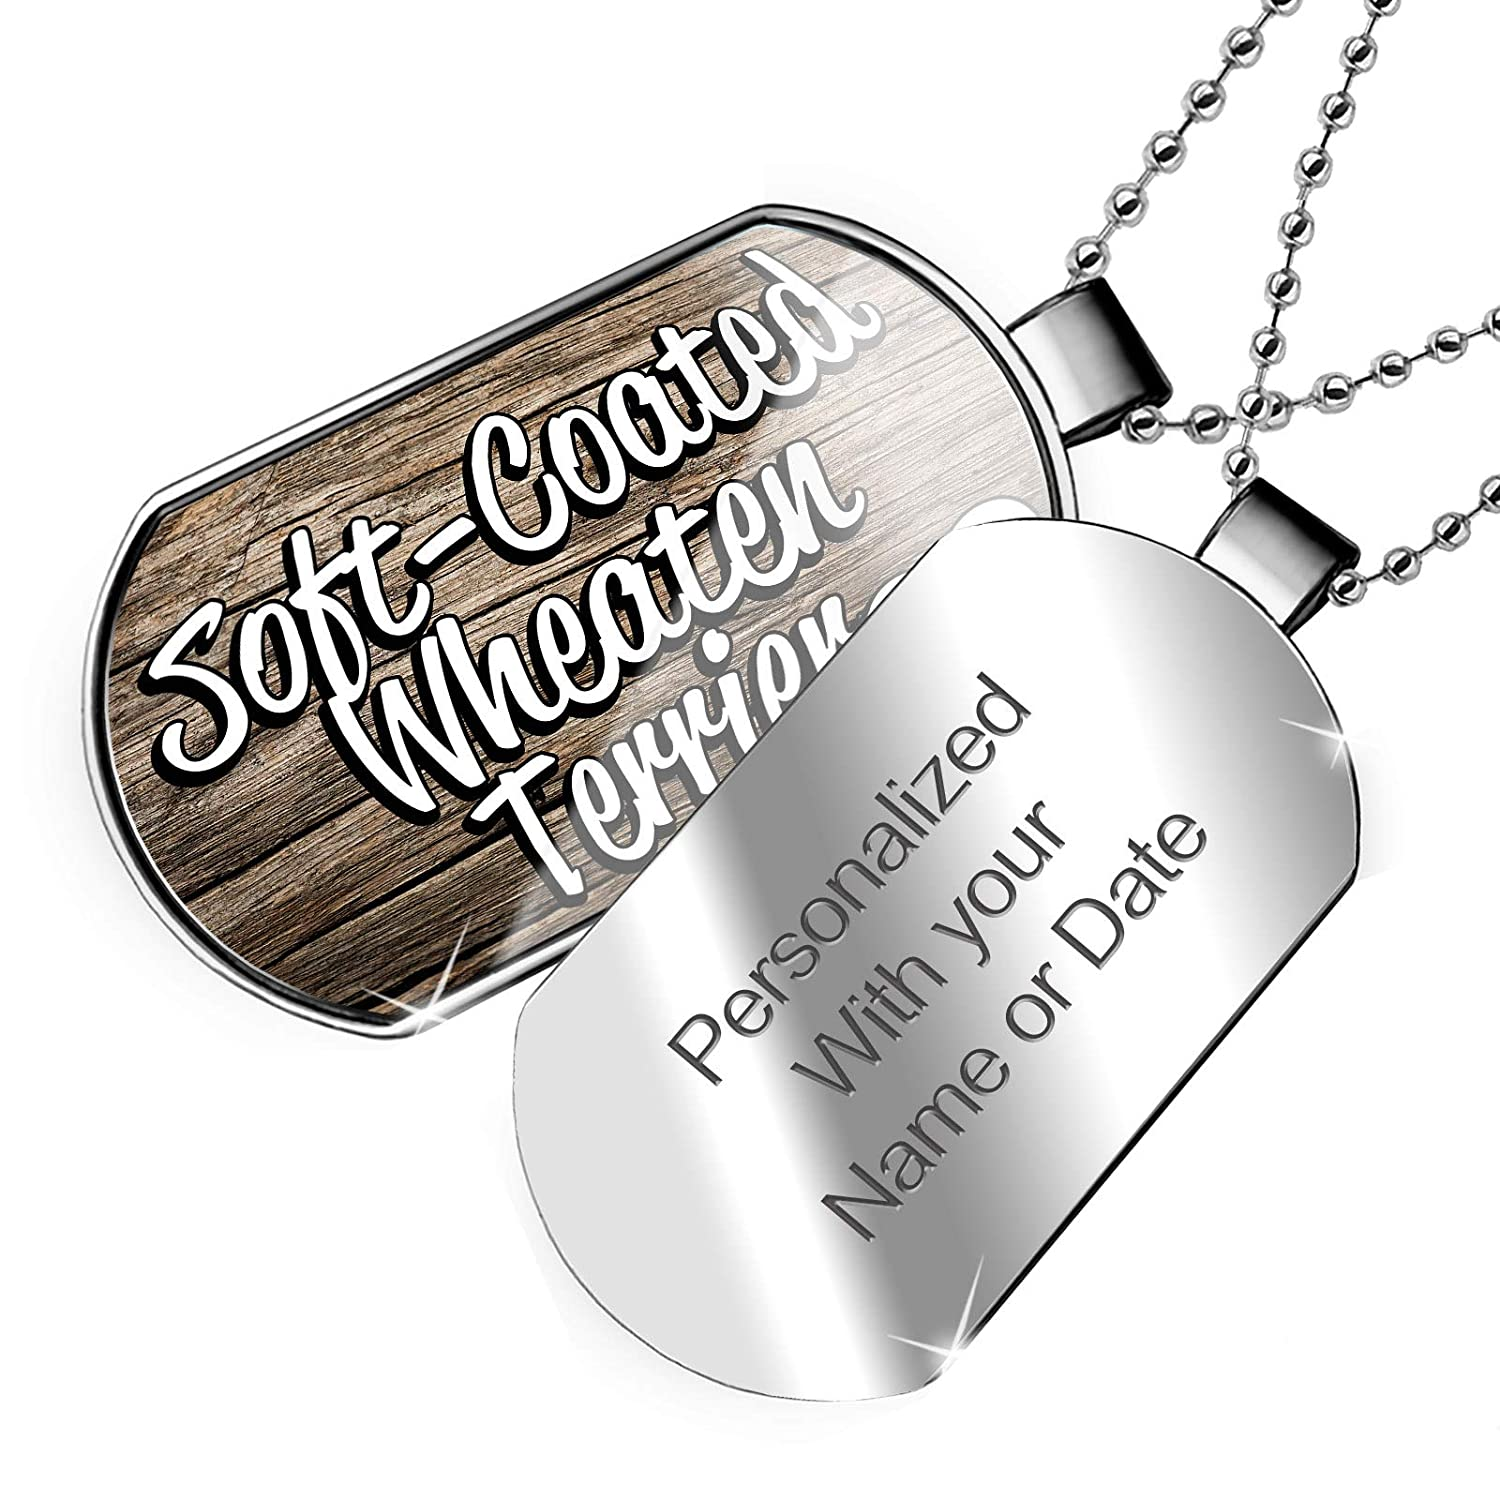 Dog Breed Ireland Dogtag Necklace NEONBLOND Personalized Name Engraved Soft-Coated Wheaten Terrier